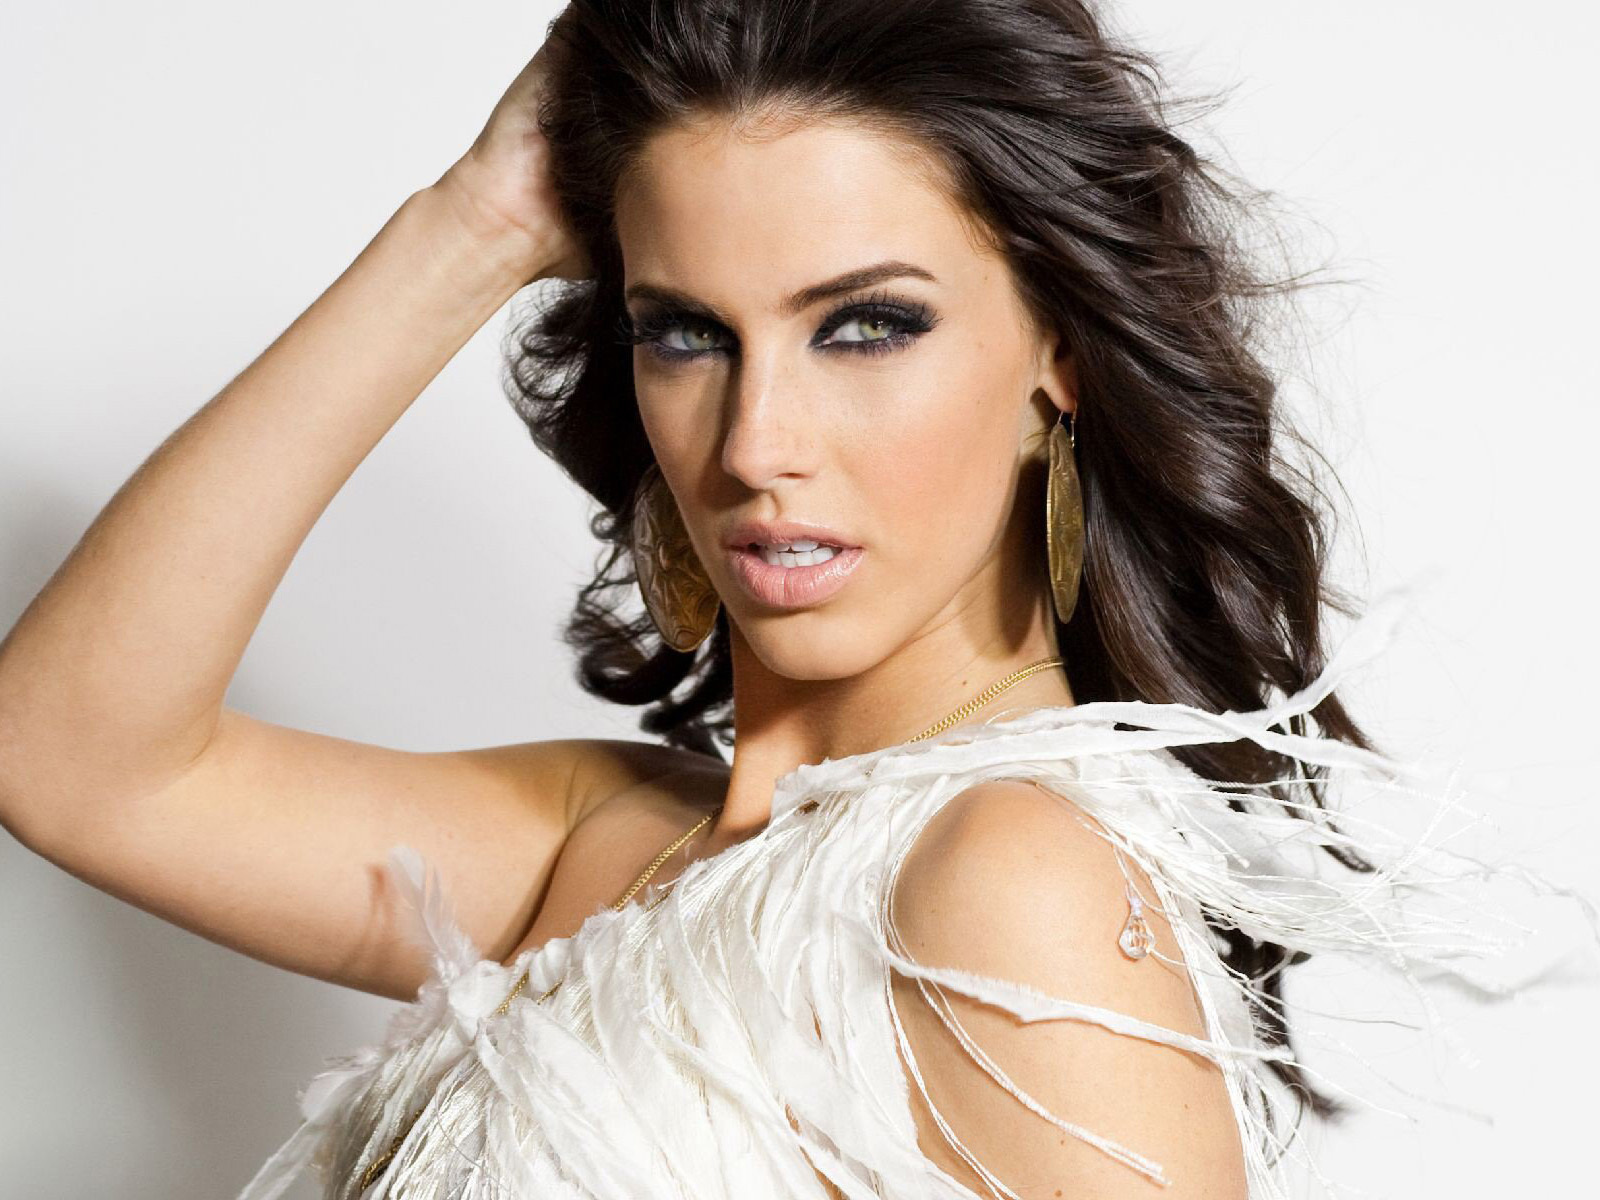 Jessica Lowndes HD Wallpaper